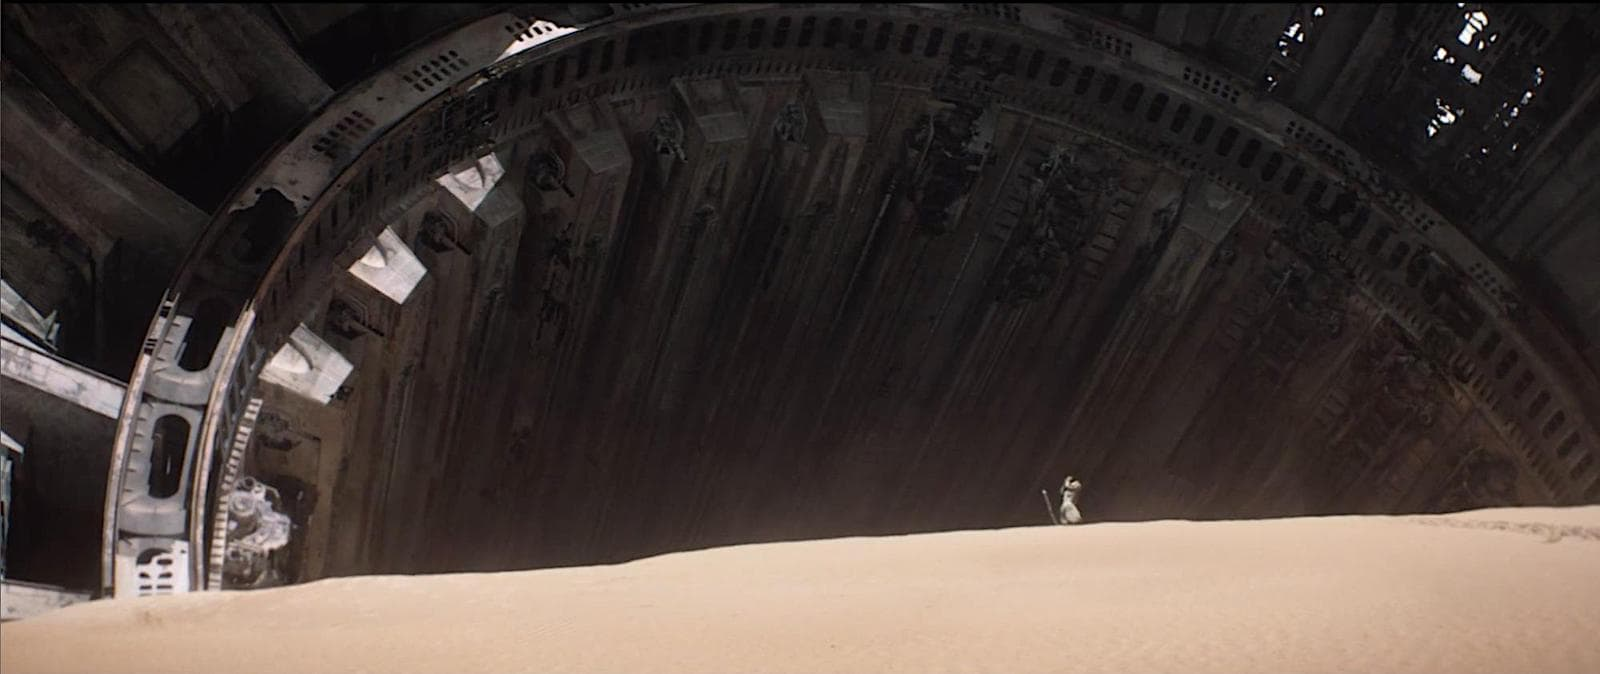 Extreme Wide Angle Shot - Camera Movements and Camera Angles - The Force Awakens